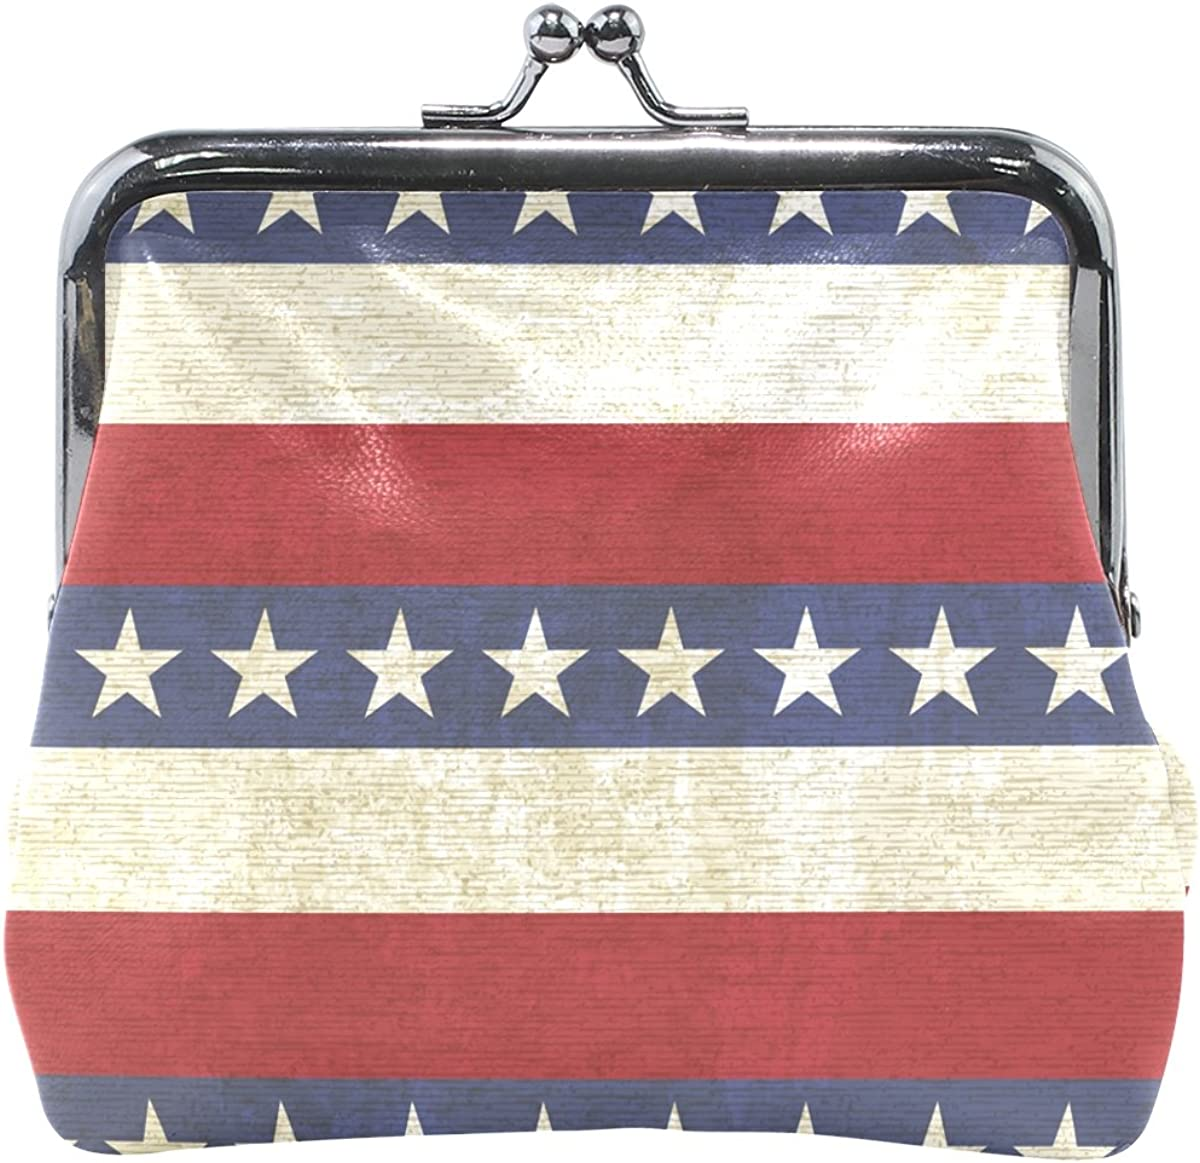 Sunlome Vintage Stripes And Stars Coin Purse Change Cash Bag Small Purse Wallets for Women Girl